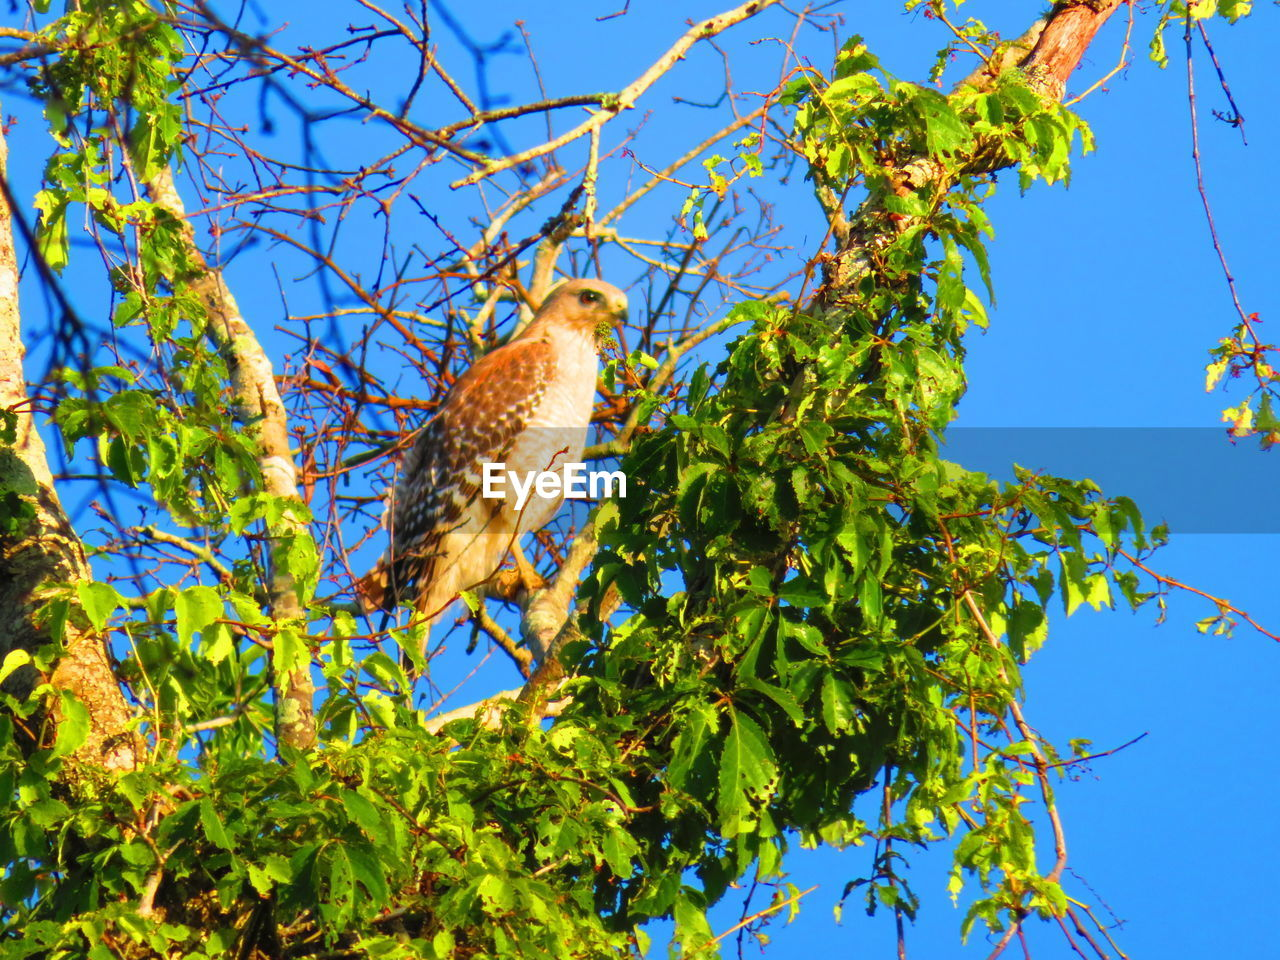 tree, low angle view, plant, bird, animal, animals in the wild, animal themes, branch, animal wildlife, one animal, vertebrate, sky, nature, no people, plant part, leaf, day, perching, blue, clear sky, outdoors